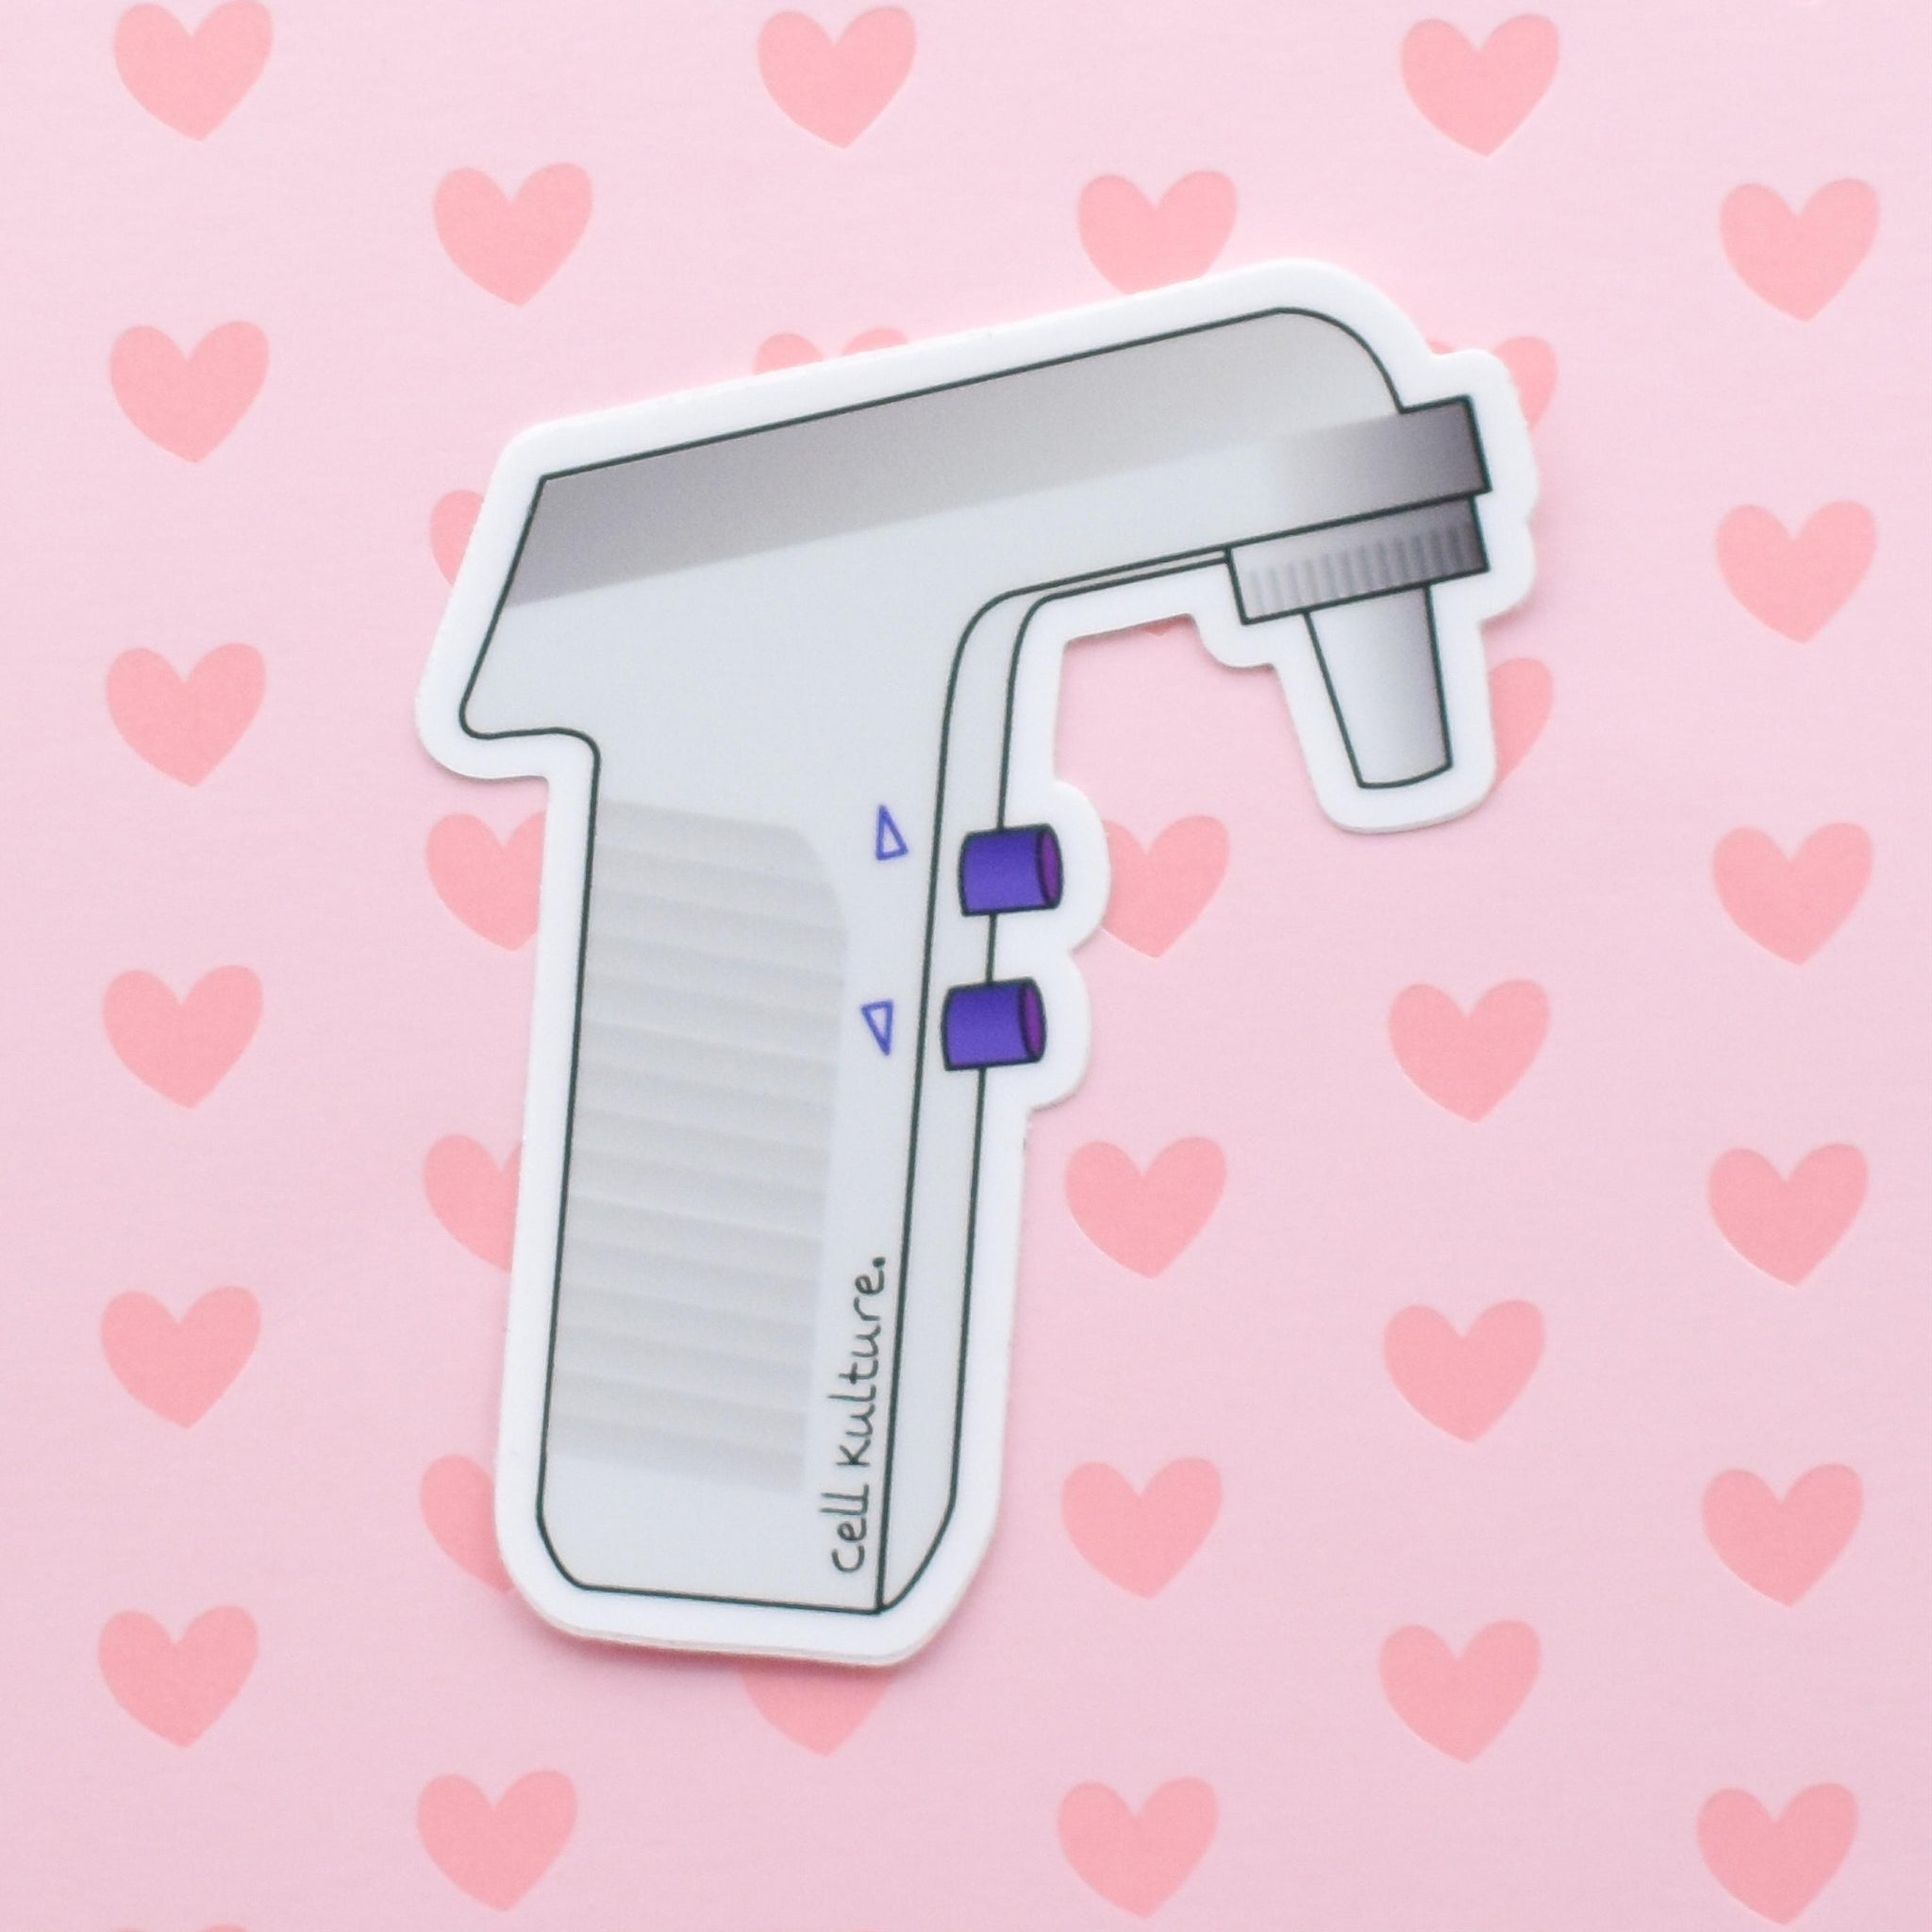 Pipette controller | vinyl science sticker (biology, chemistry)